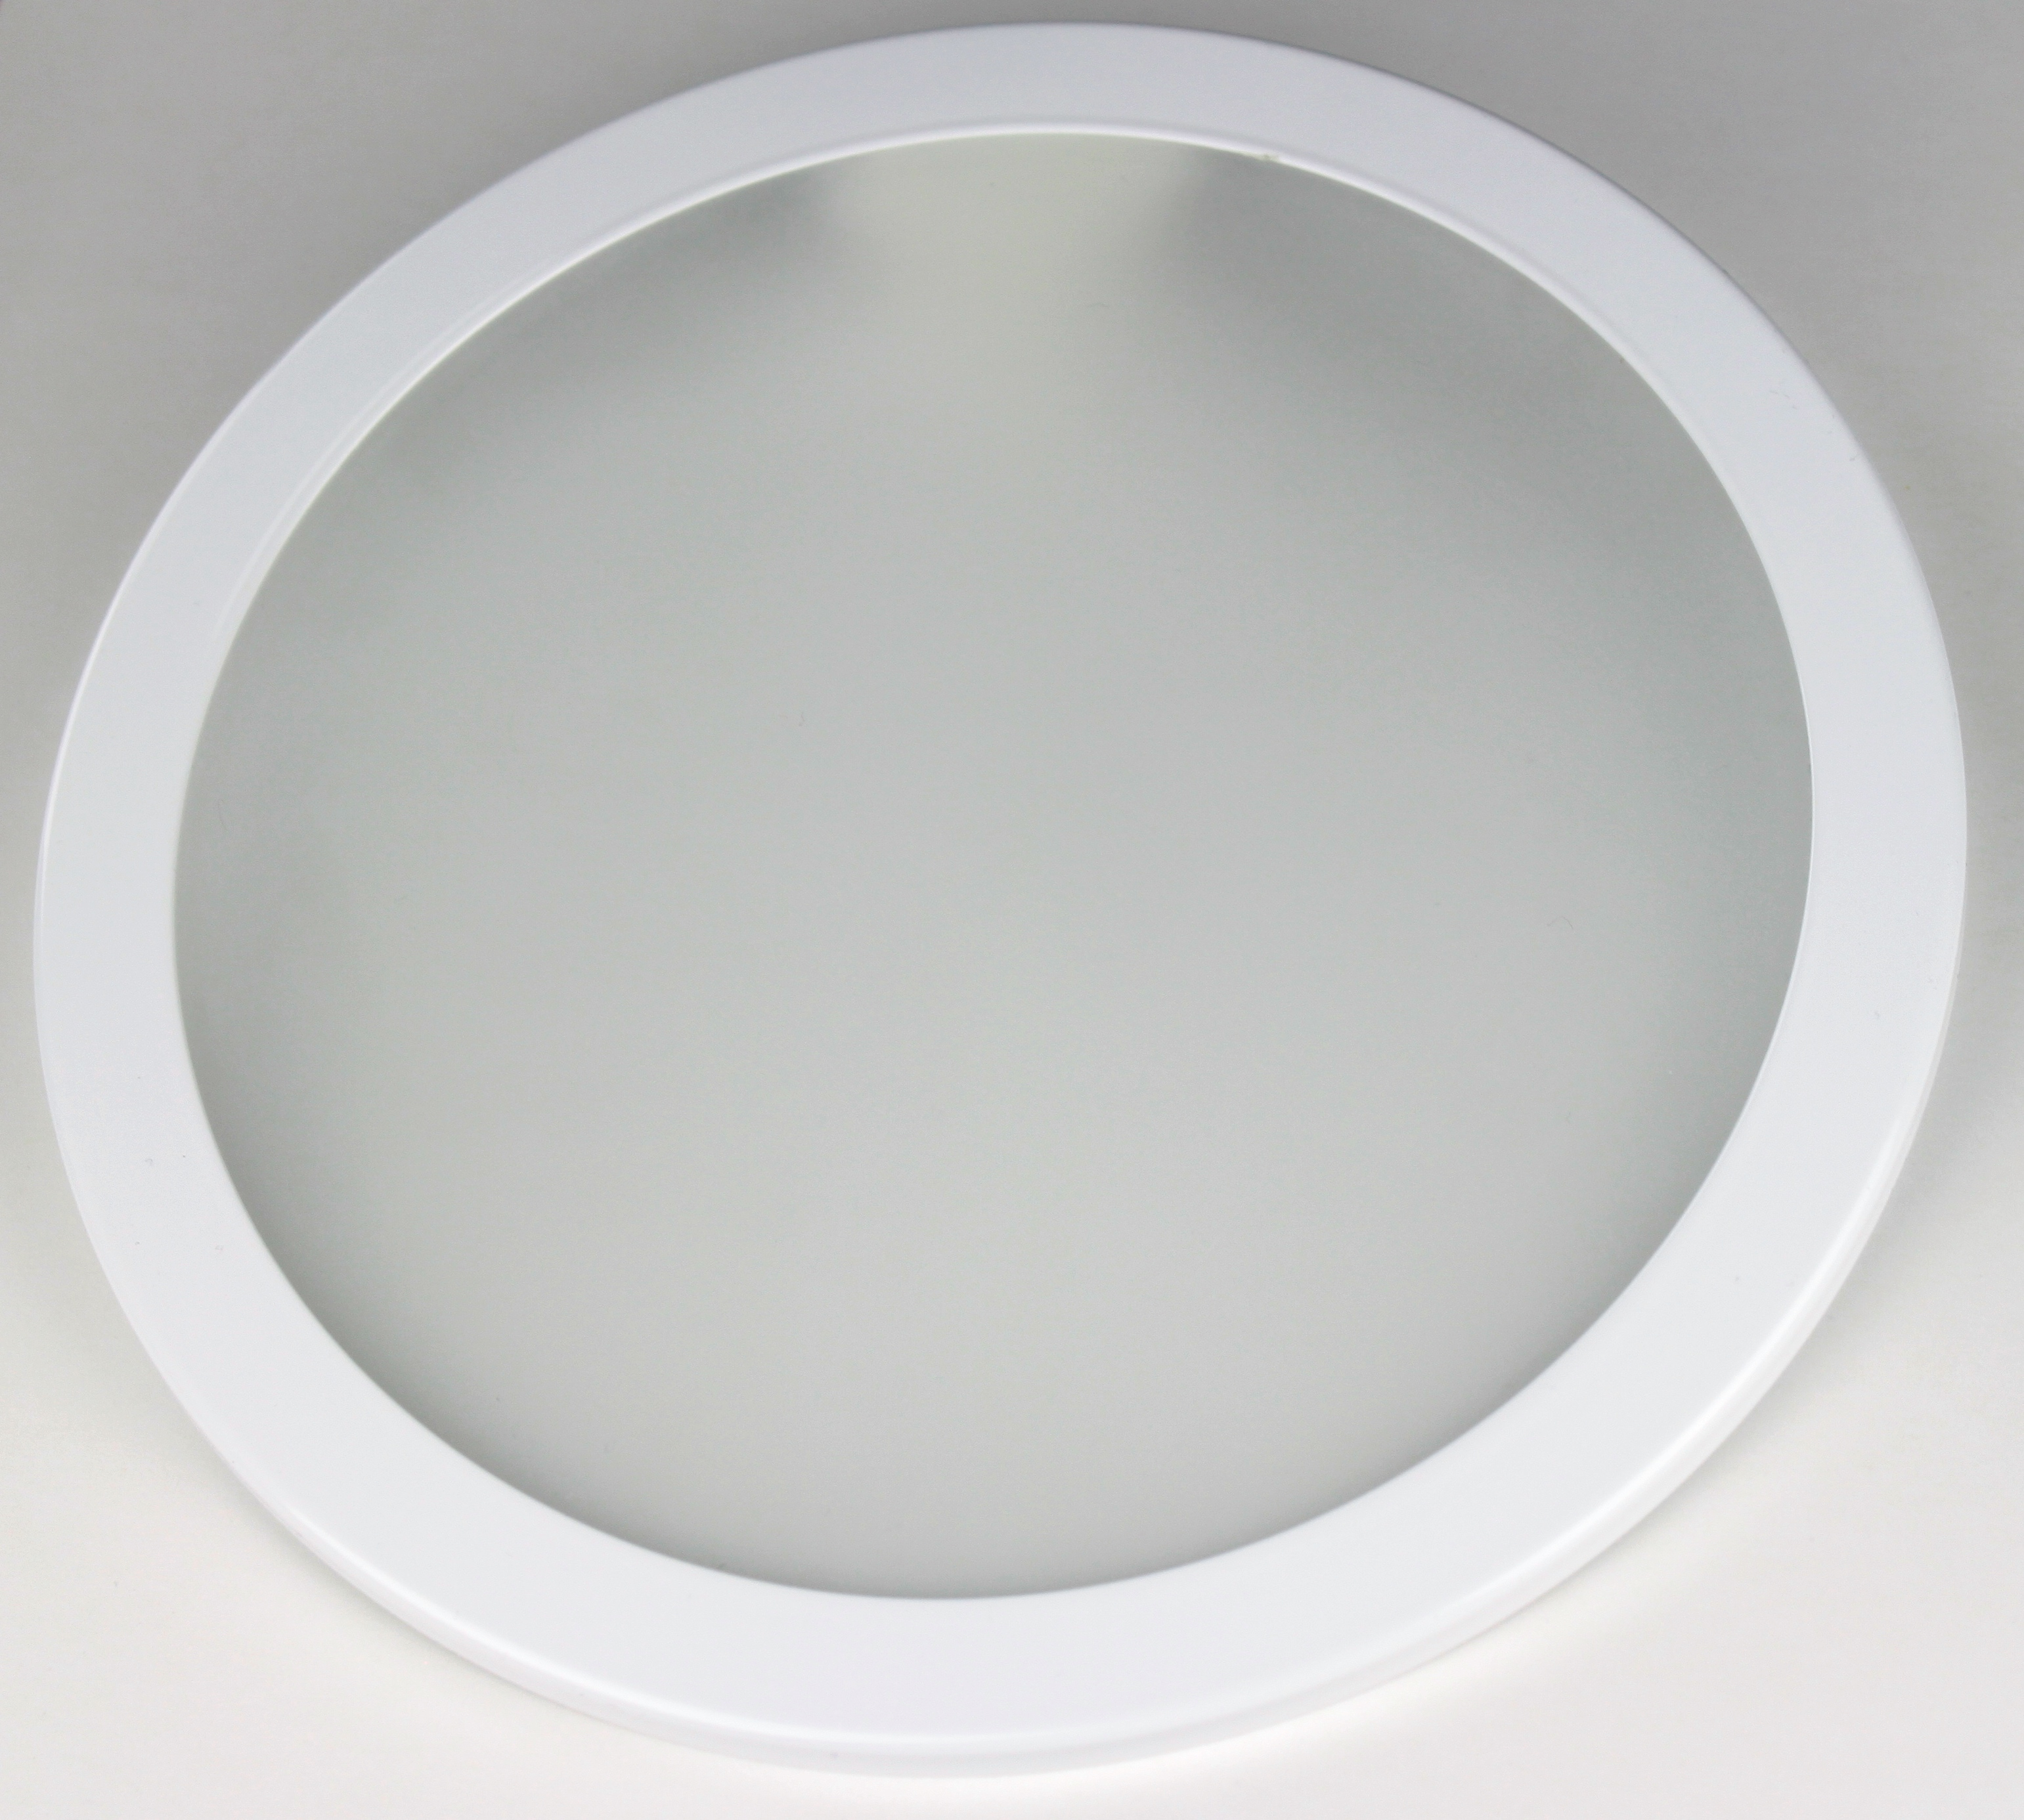 ERM 200 LED Glas IP44 opal mit Montagering